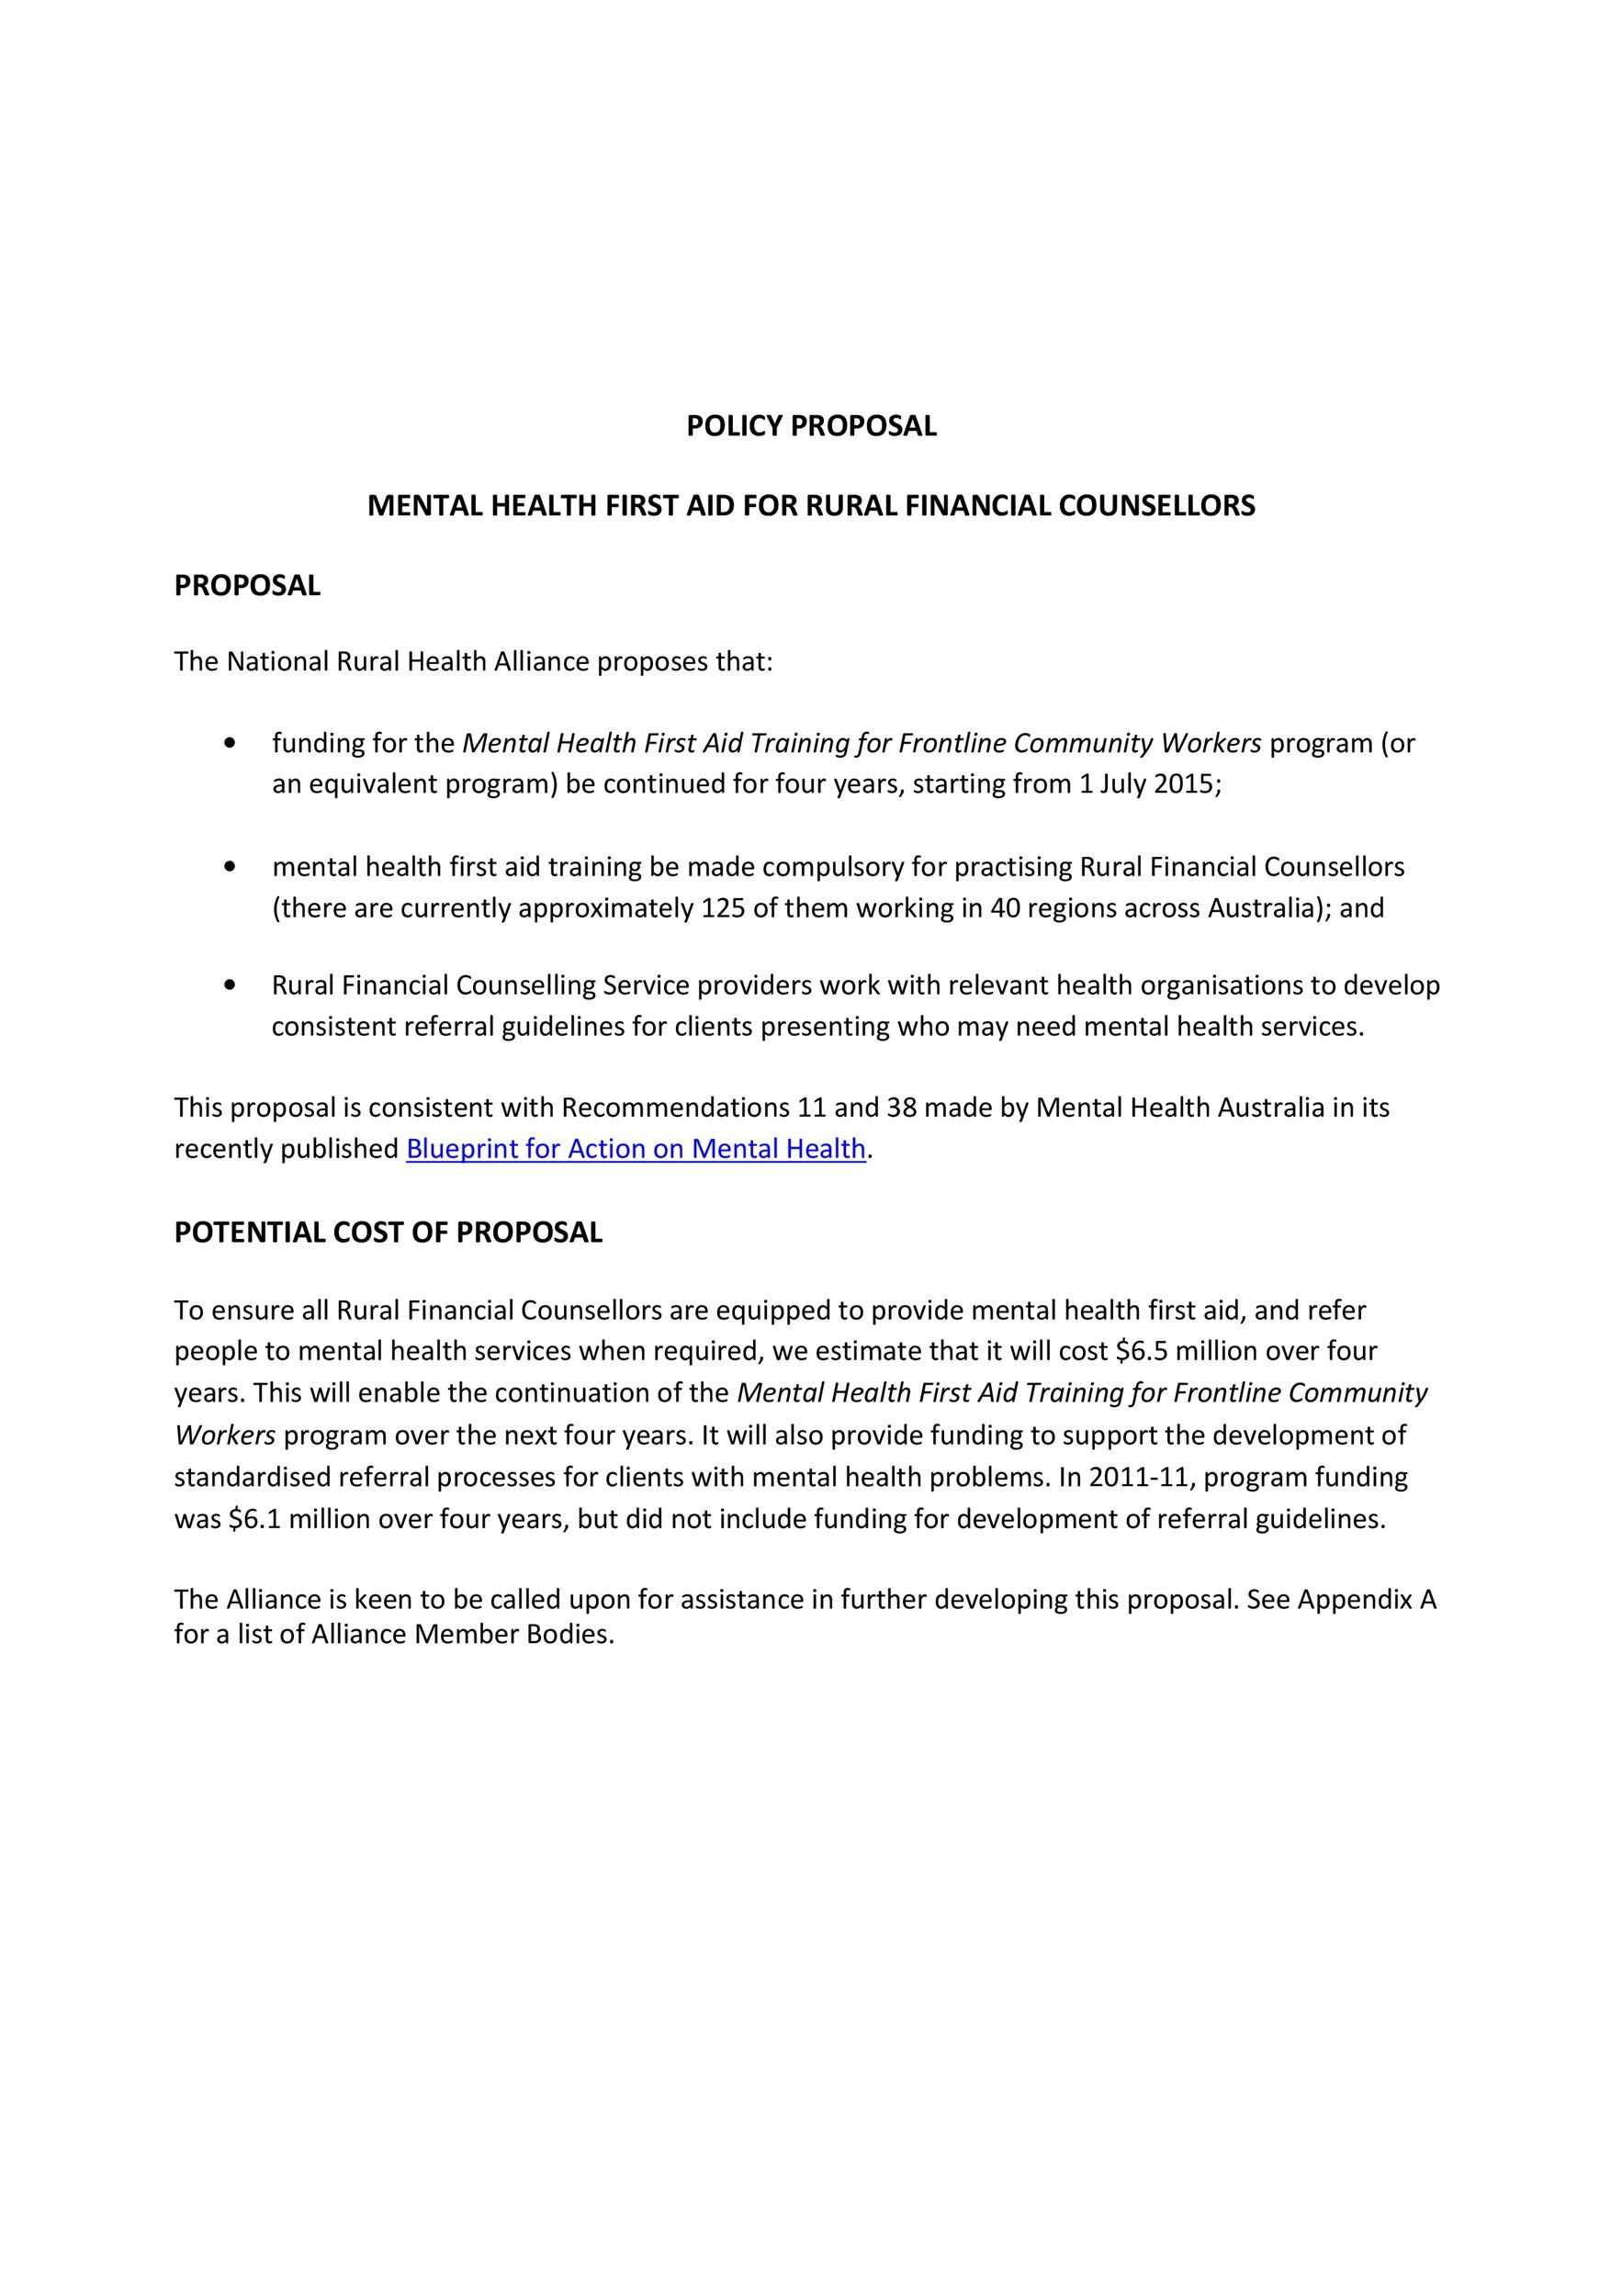 Free policy proposal template 12